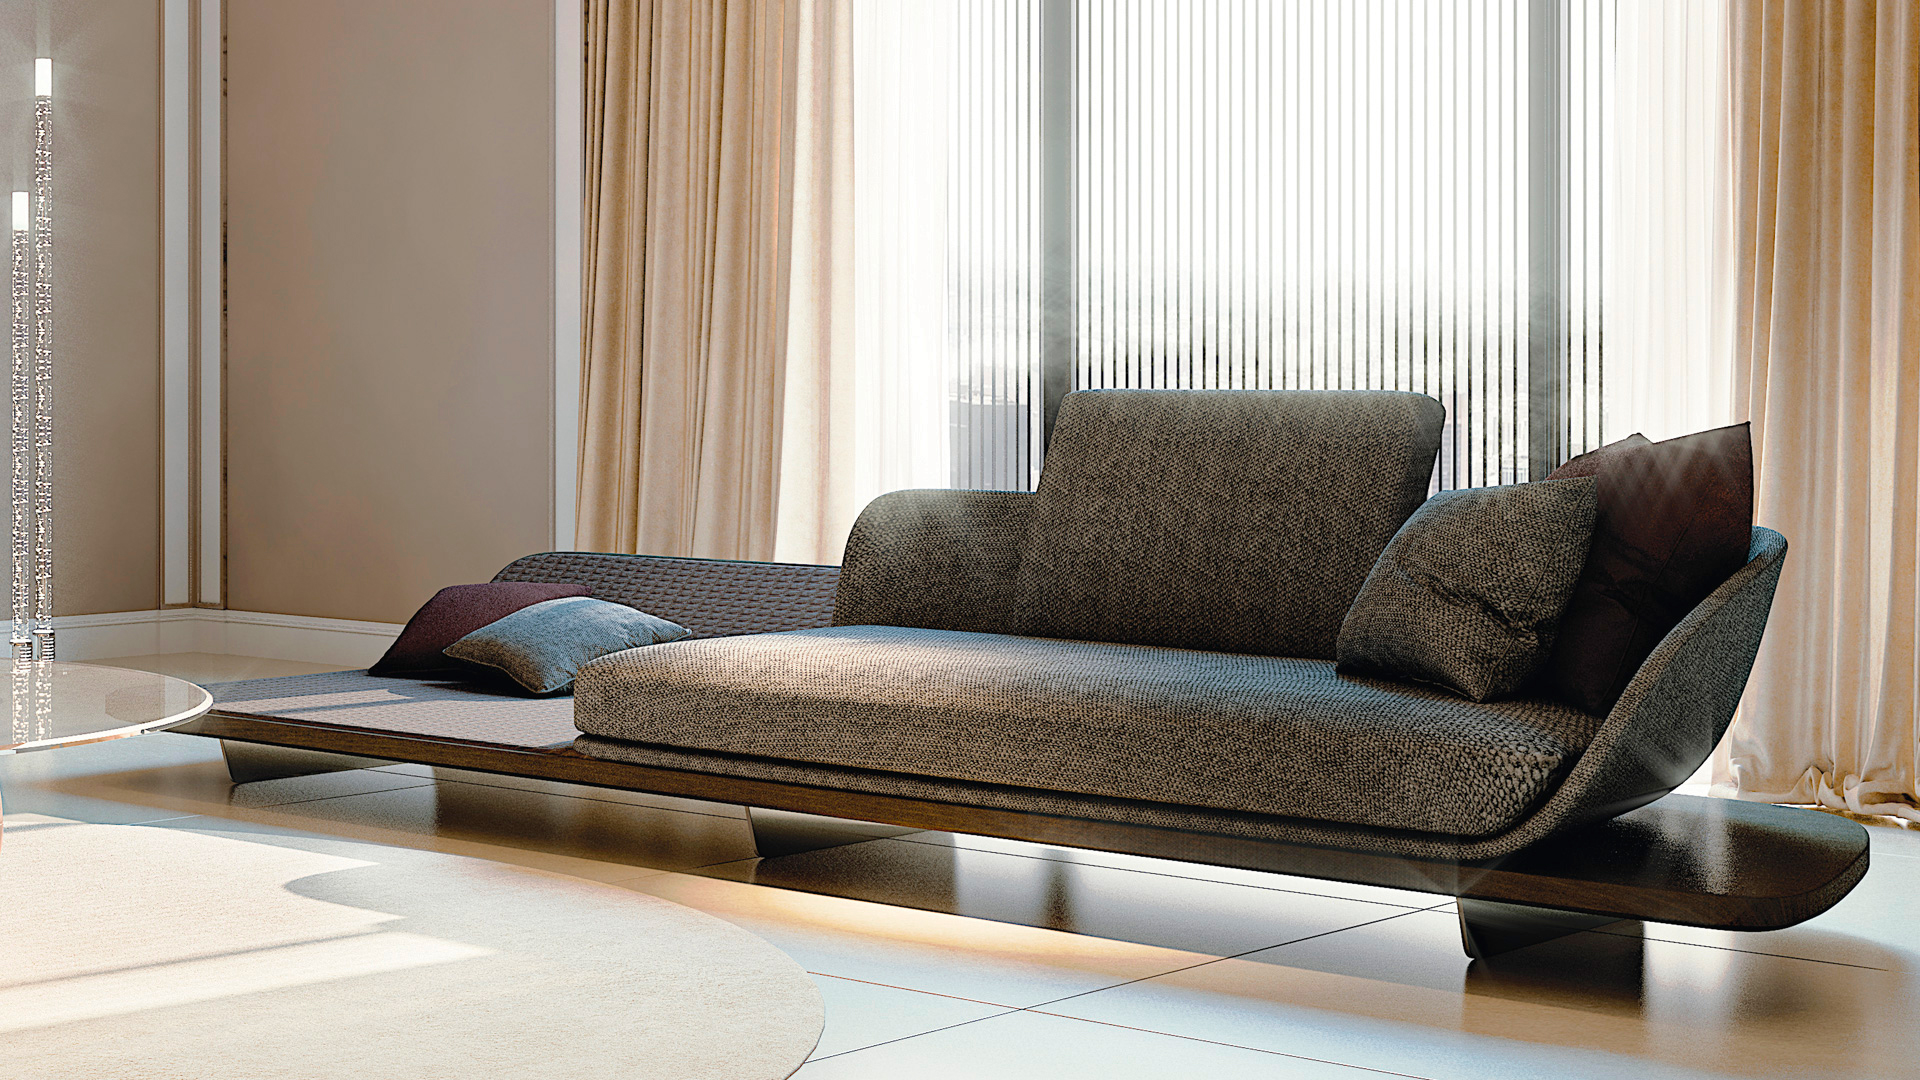 High End Italian Segno Chaise Lounge Italian Designer & Luxury